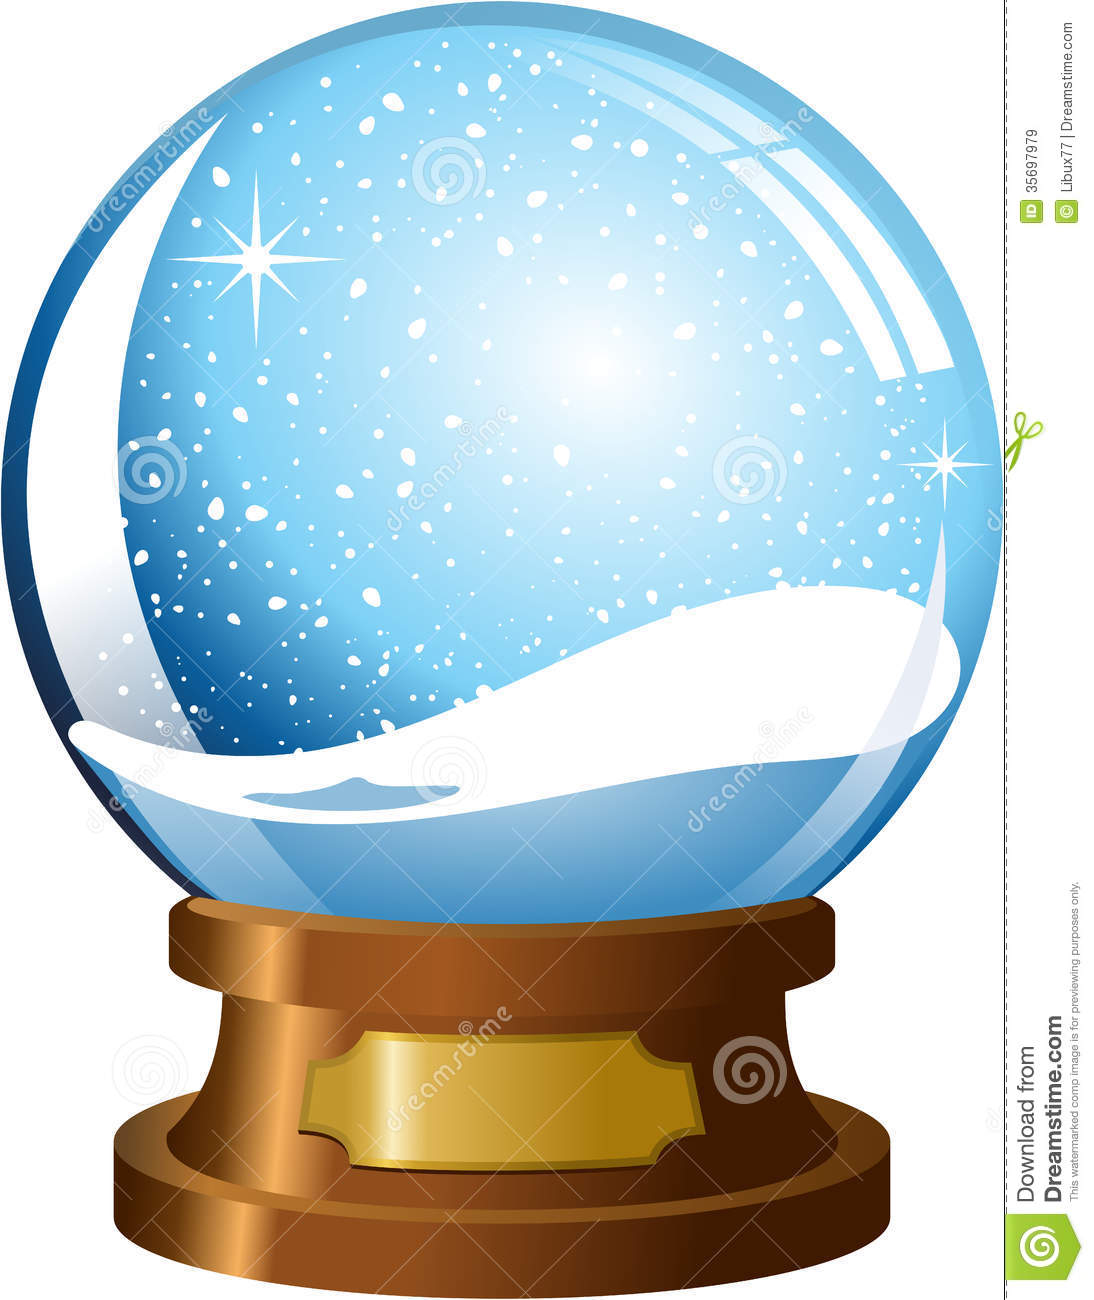 christmas snow globe clipart at getdrawings com free for personal rh getdrawings com christmas snow globe clipart free empty snow globe clipart